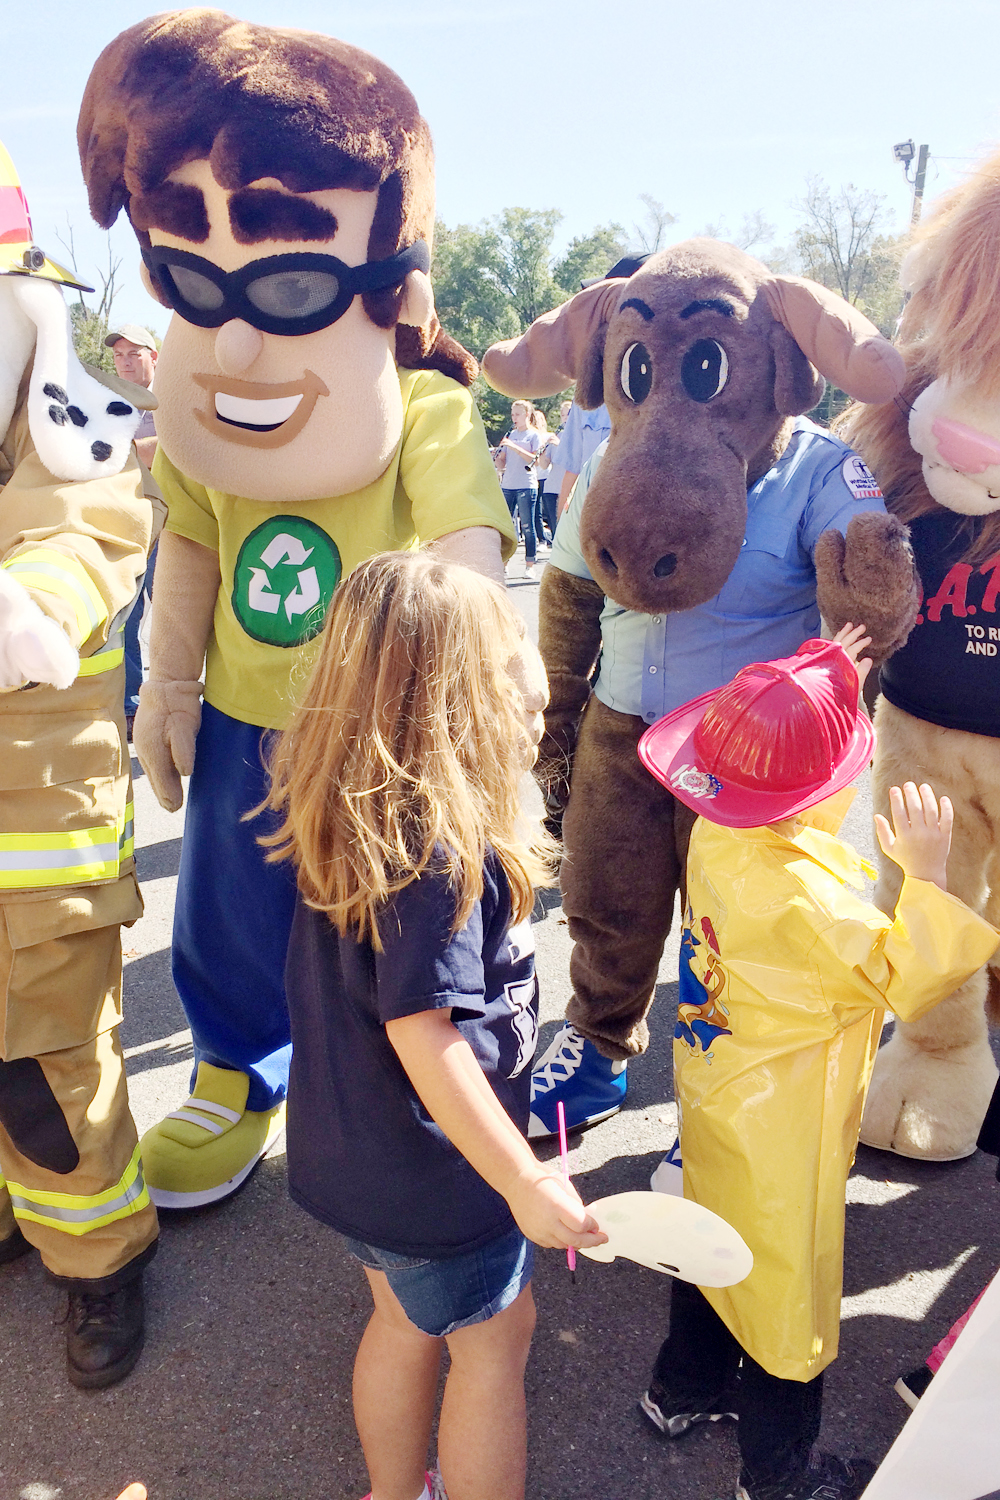 Mascot Recycling Ben greets students along with Medic Moose (Official Mascot of Hamilton EMS) and other mascots during the annual Cohutta Elementary School Career Day and Parade. An appearance by Recycling Ben is one of the benefits of Target Recycling at School.